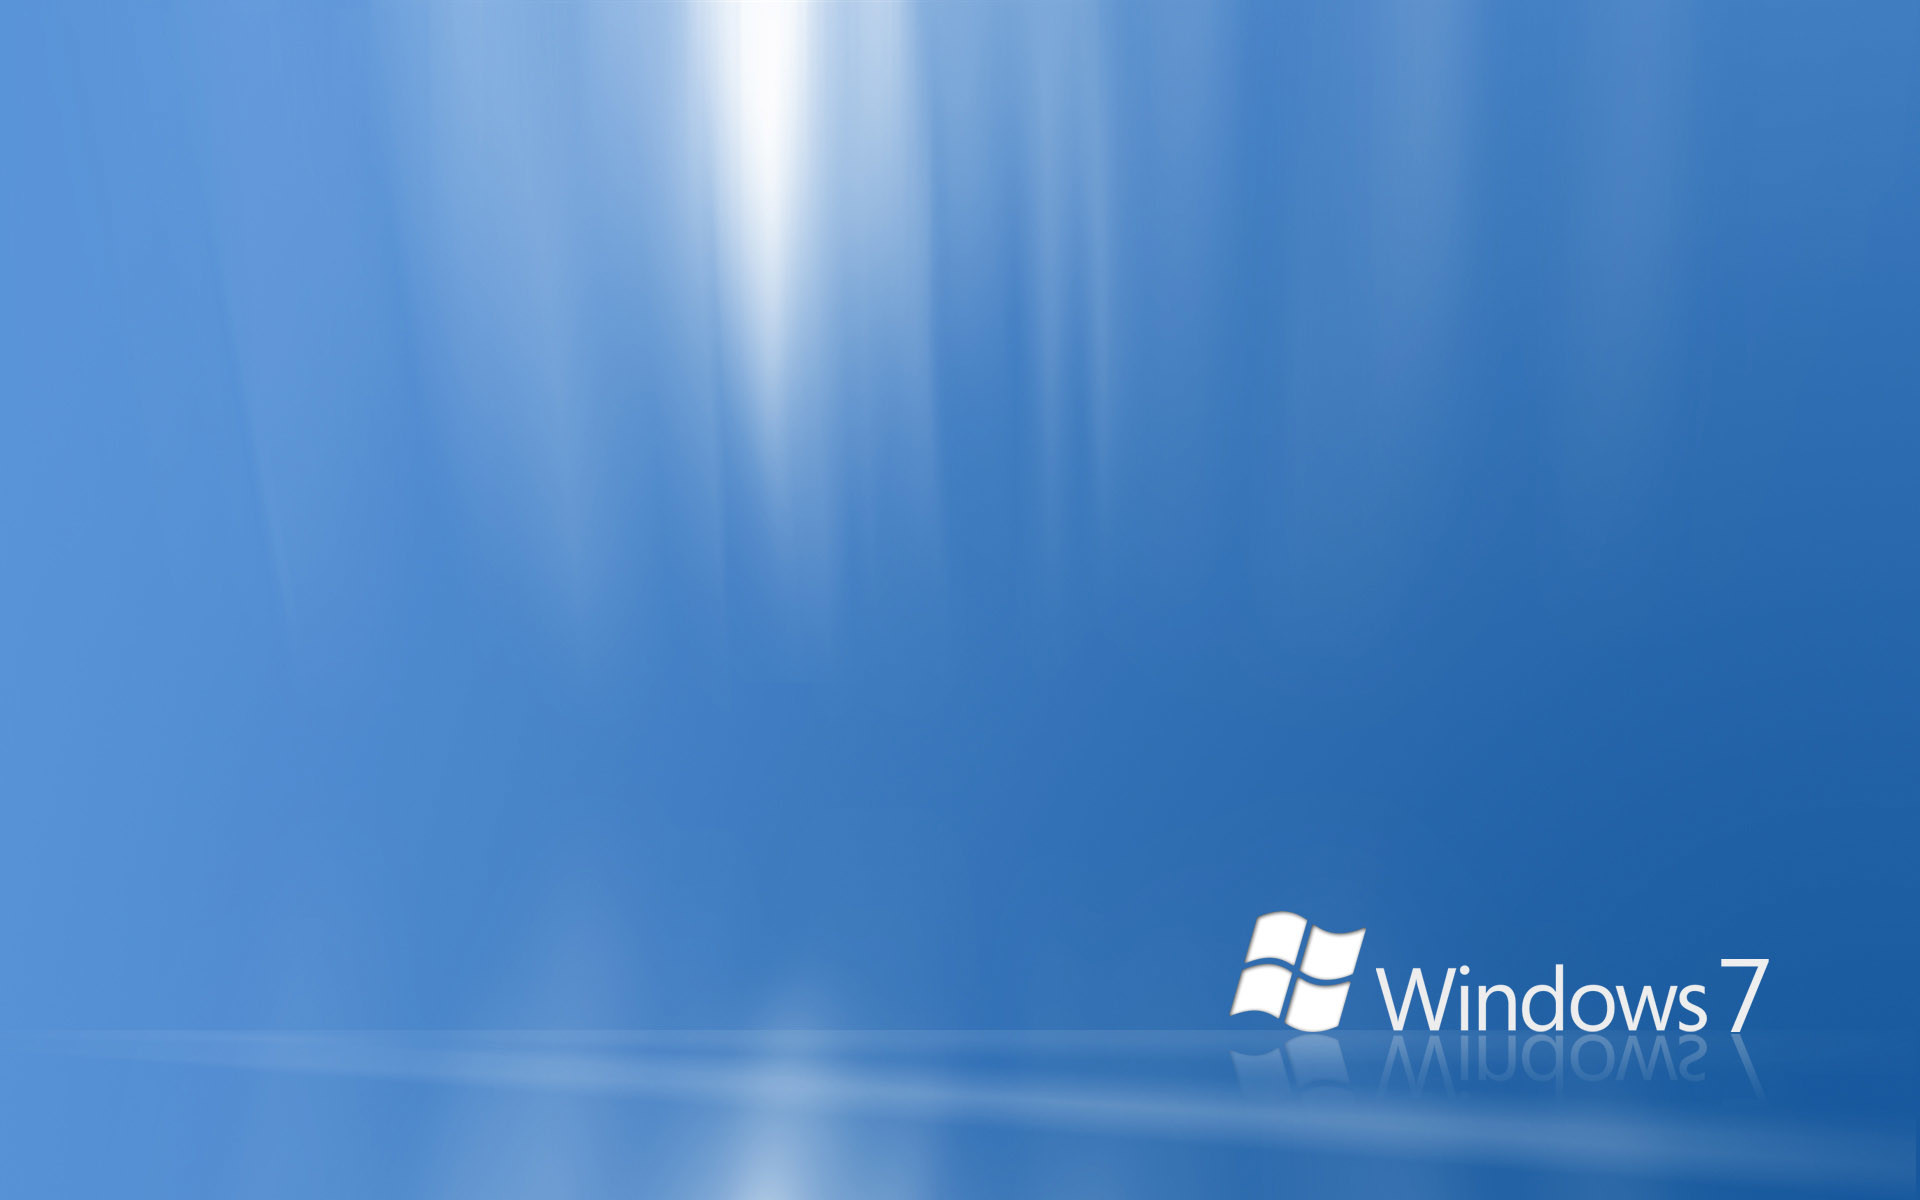 3840x2160 In My Case I Simply Grabbed The Default Wallpaper From Server They Can Be Found CWindowsWeb4KWallpaperWindows